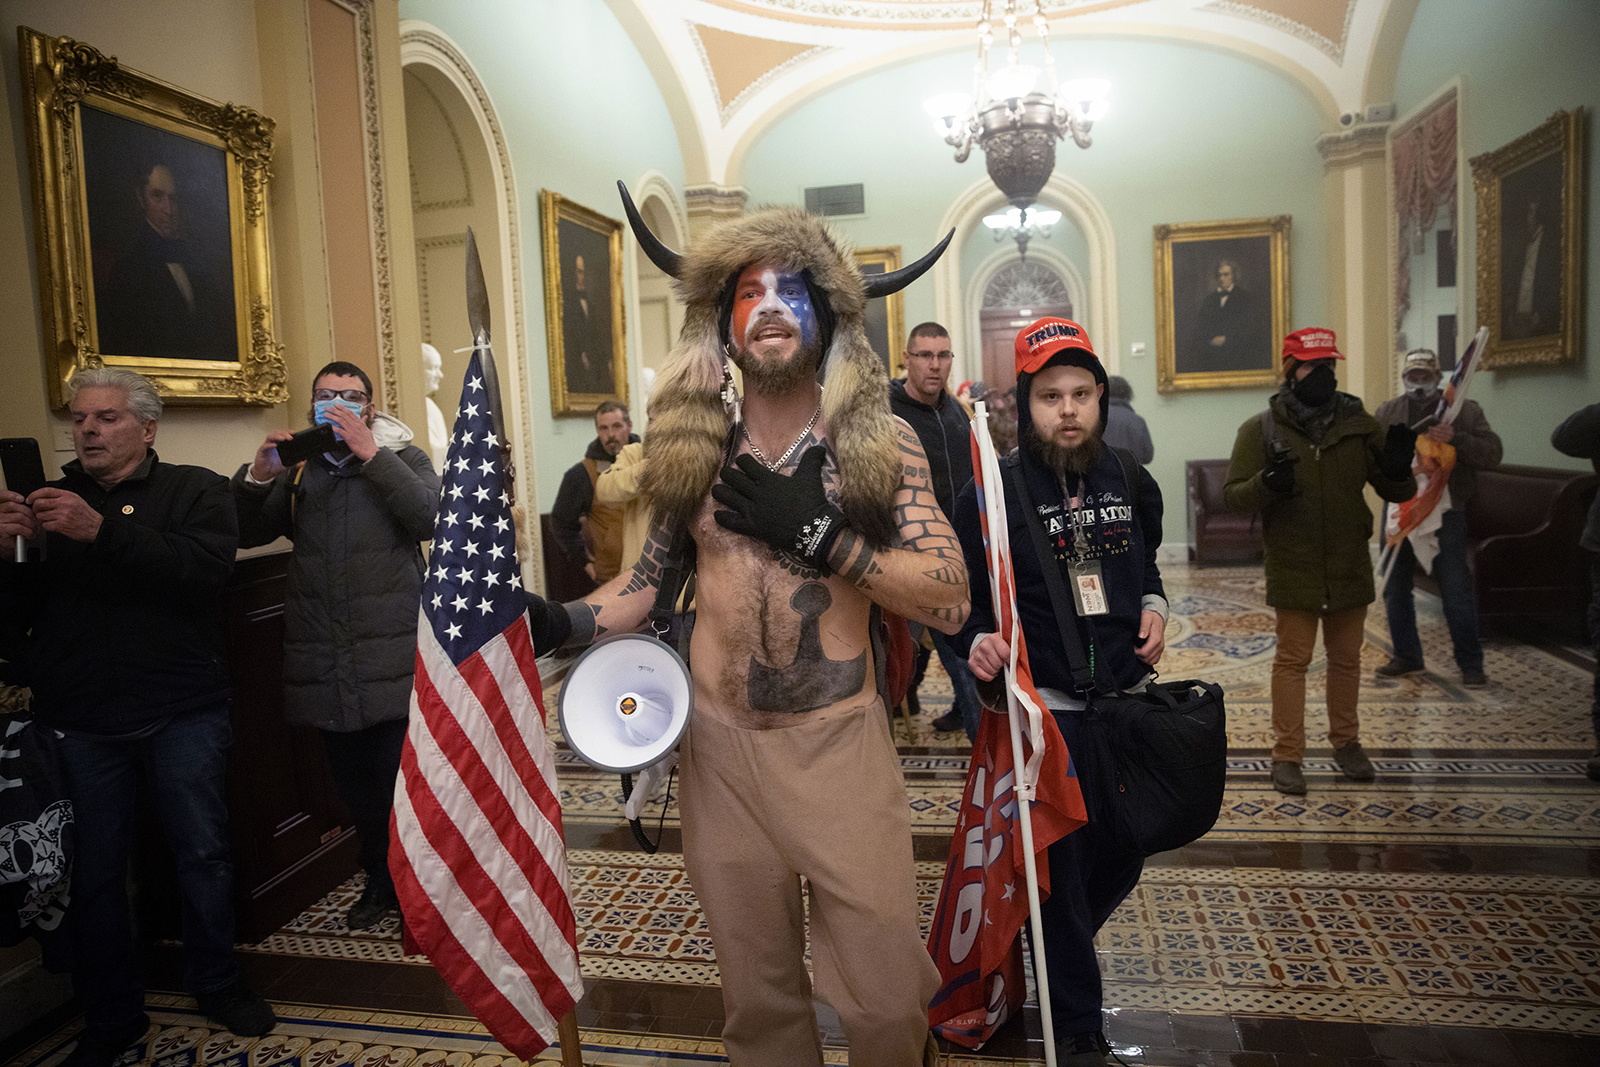 US says Capitol rioters intended to 'capture and assassinate' elected officials